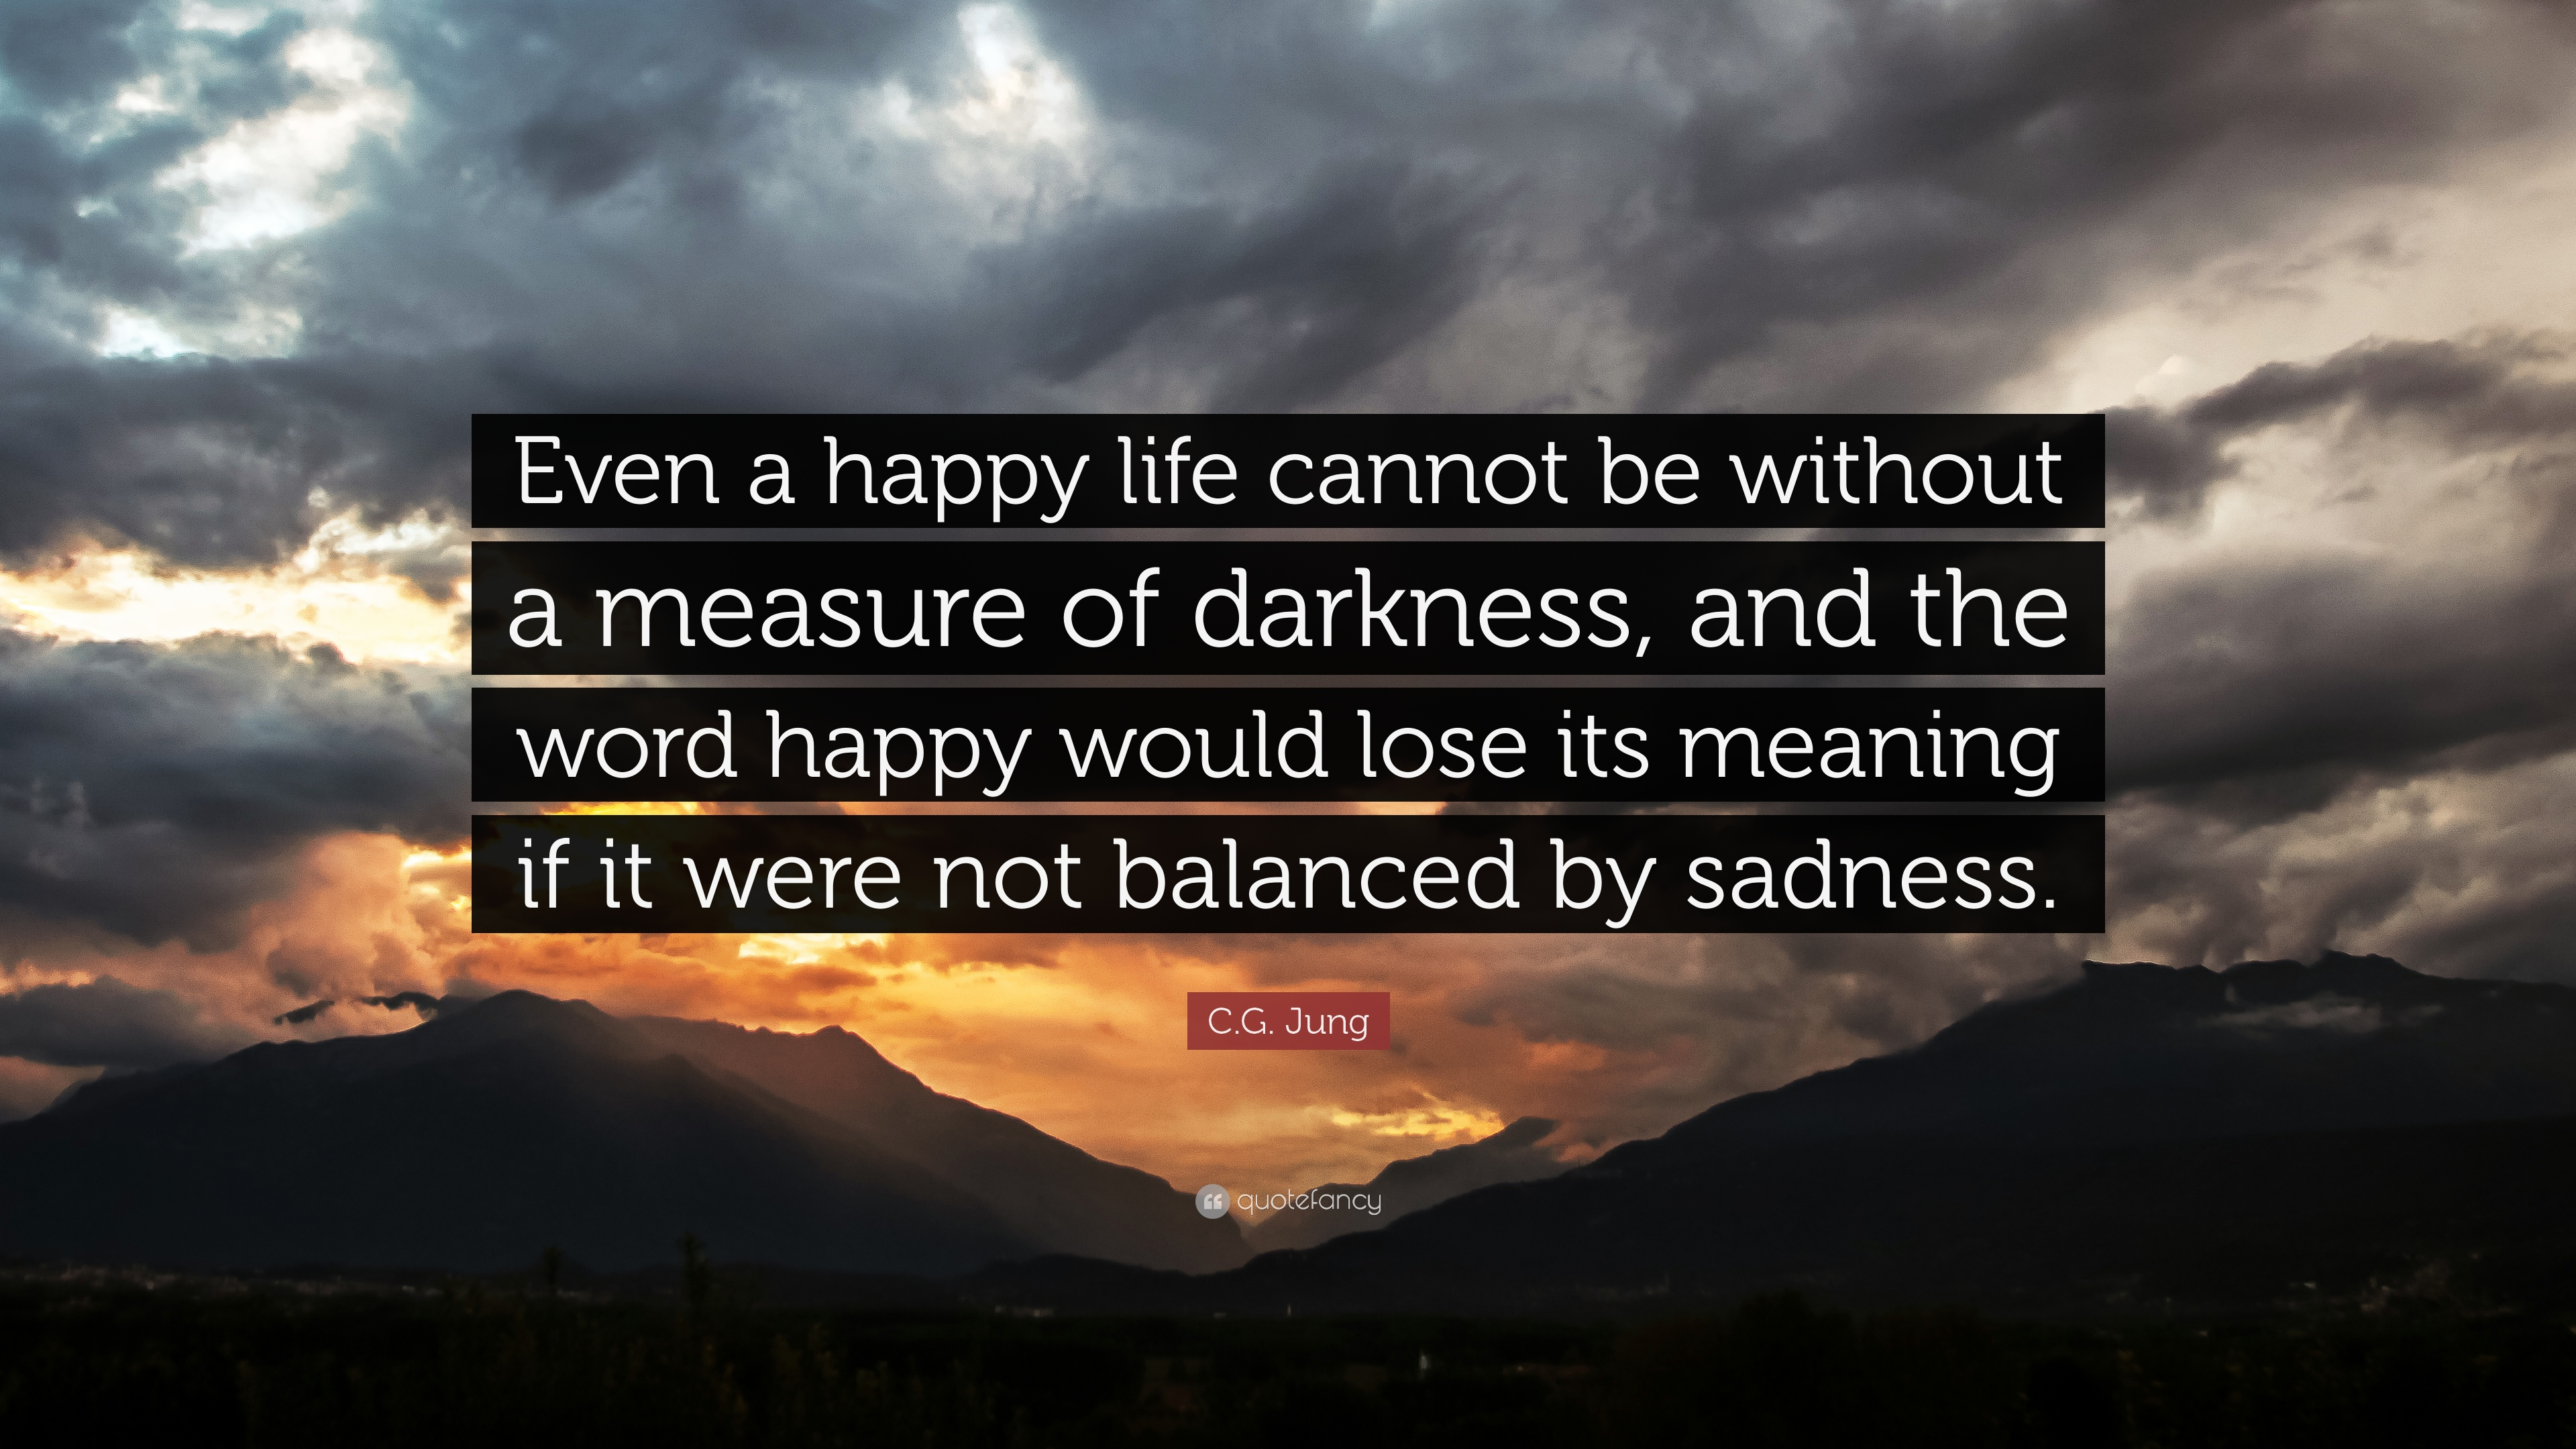 C G Jung Quote Even A Happy Life Cannot Be Without A Measure Of